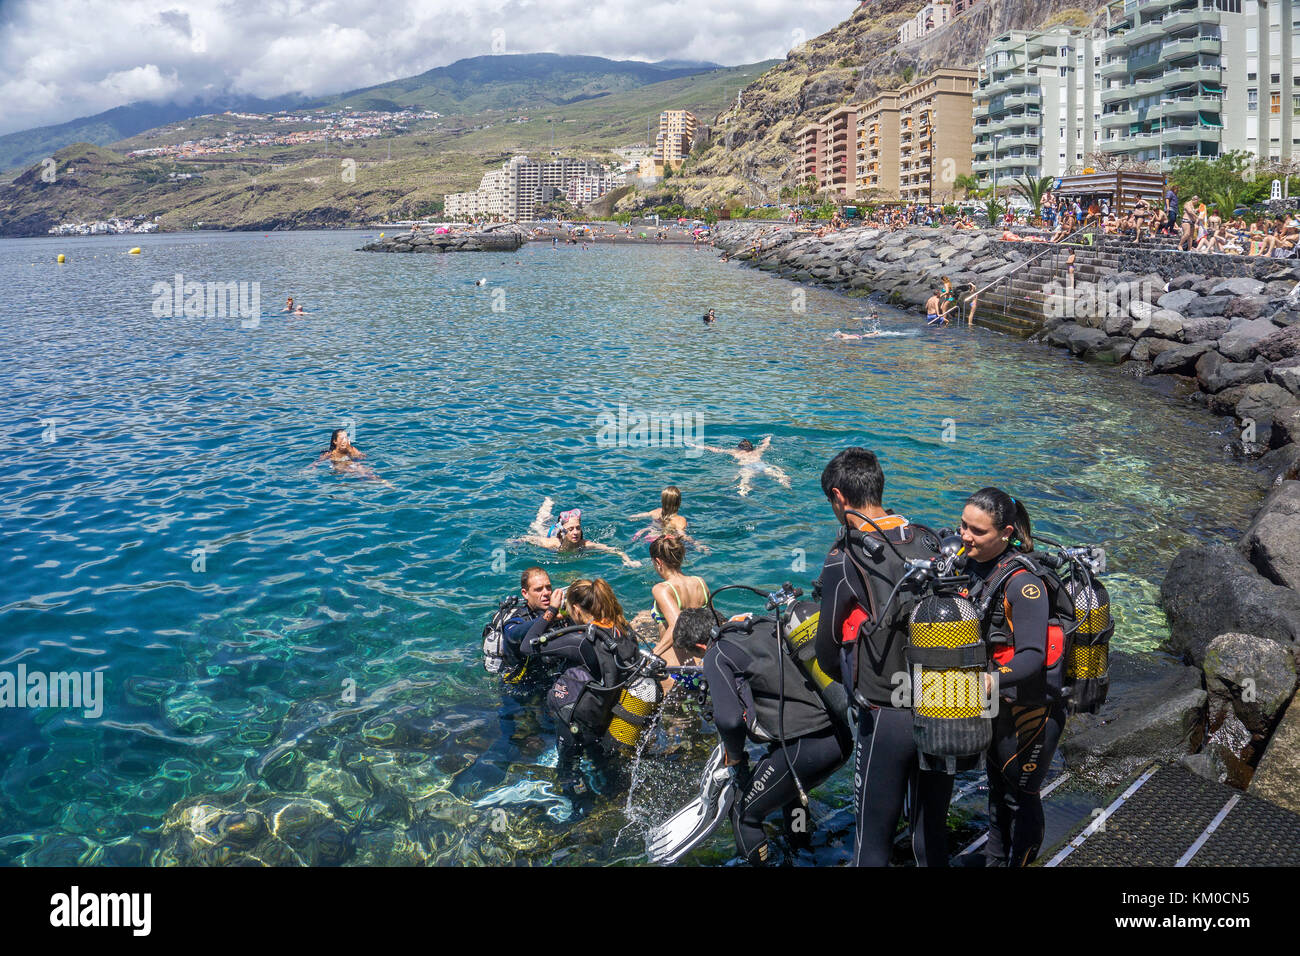 A group scuba diver entering water at Radazul, south-east of Tenerife island, Canary islands, Spain - Stock Image